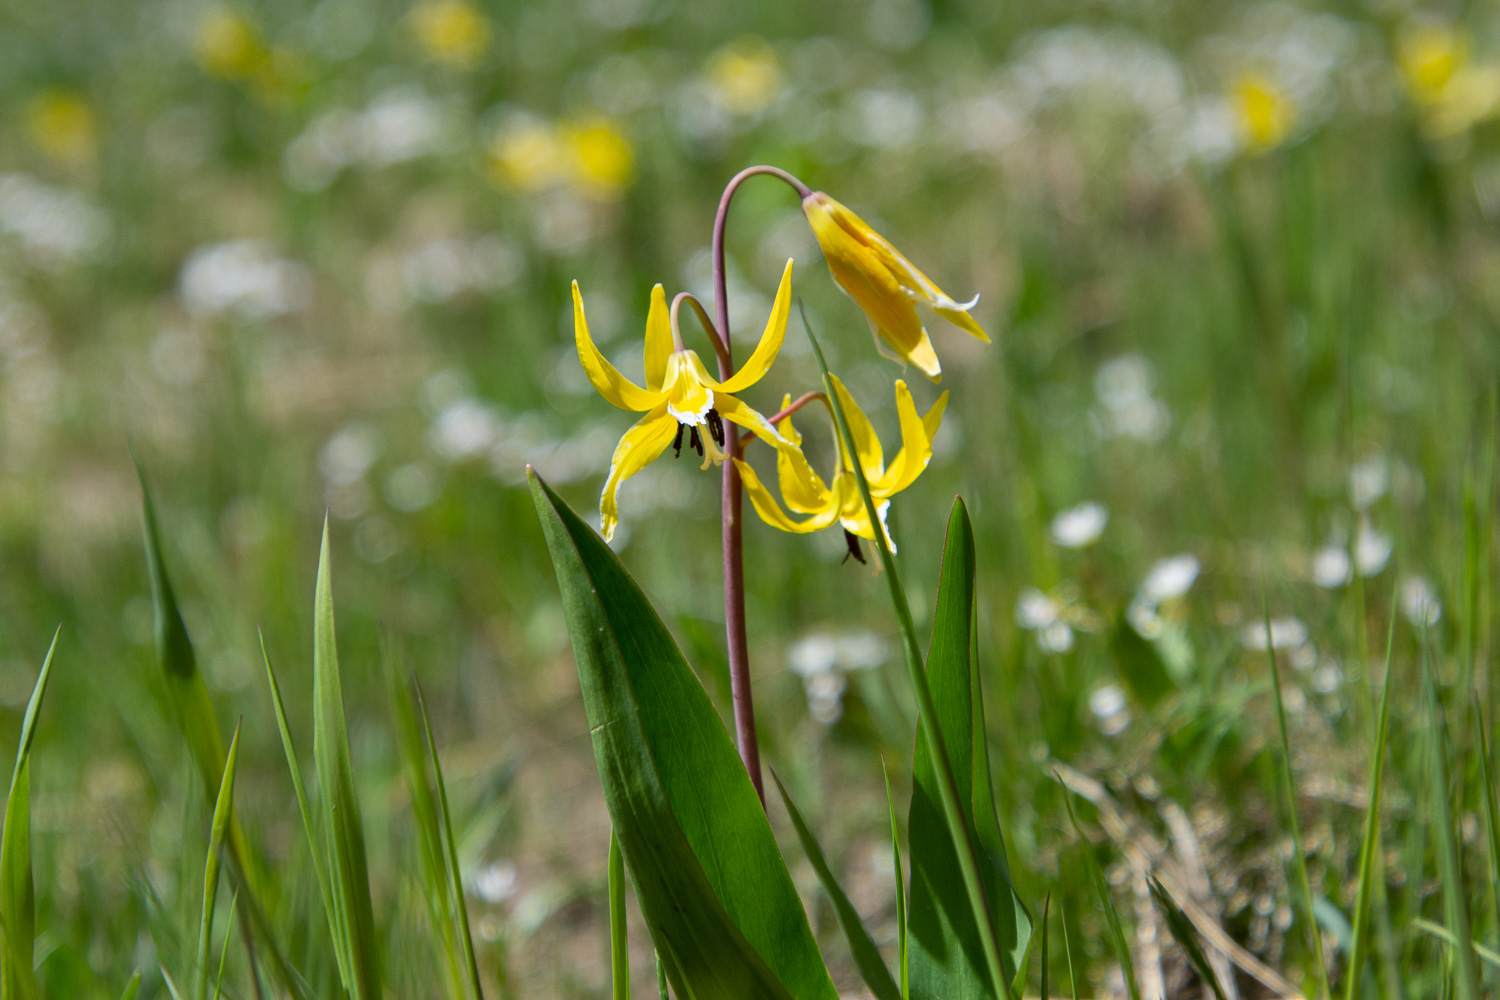 Yellow avalanche lily